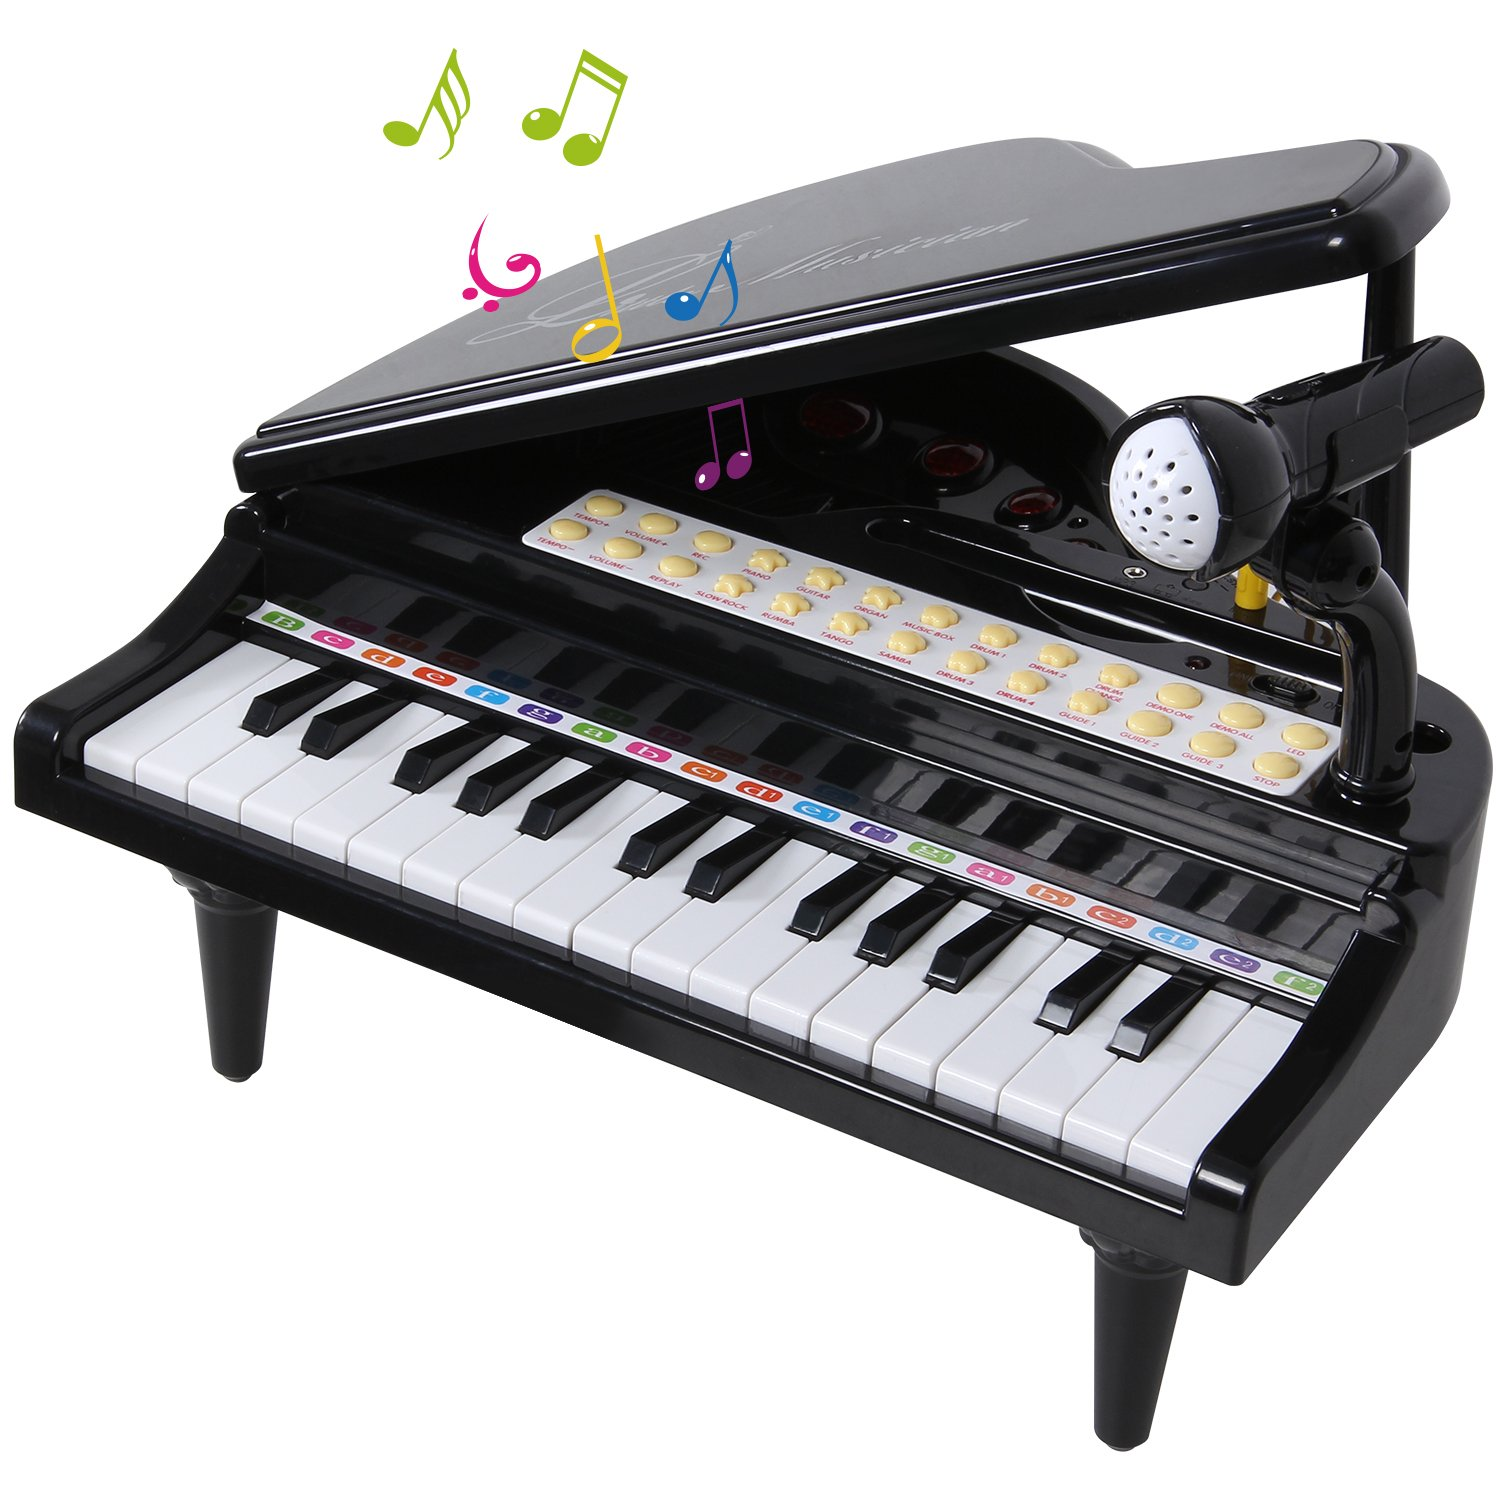 ANTAPRCIS 31 Keys Piano Keyboard Toy with Microphone, Audio Link with Mobile MP3 Ipad, Black by ANTAPRCIS